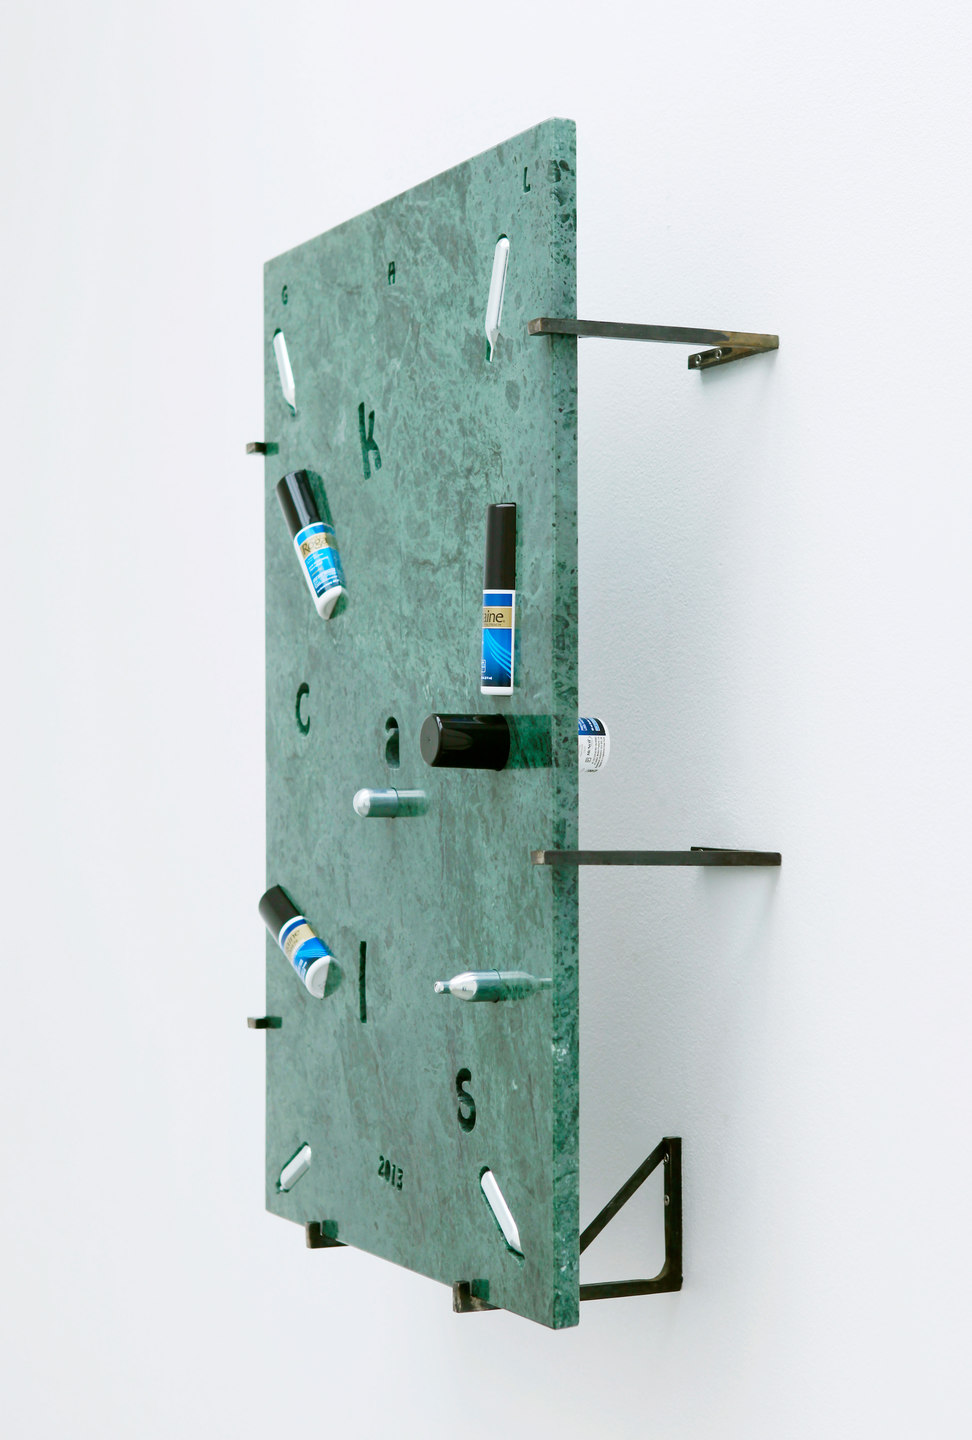 George Henry Longly, 2013: Year of the Snake, 2013, Verde Guatamala marble, whipping cream, chargers (nitrous oxide / laughing gas), Regaine (UK), Rogaine (US), Manifique (gay magazine), steel stand off fixings, 57 x 82 x 18 cm, Cell Project Space